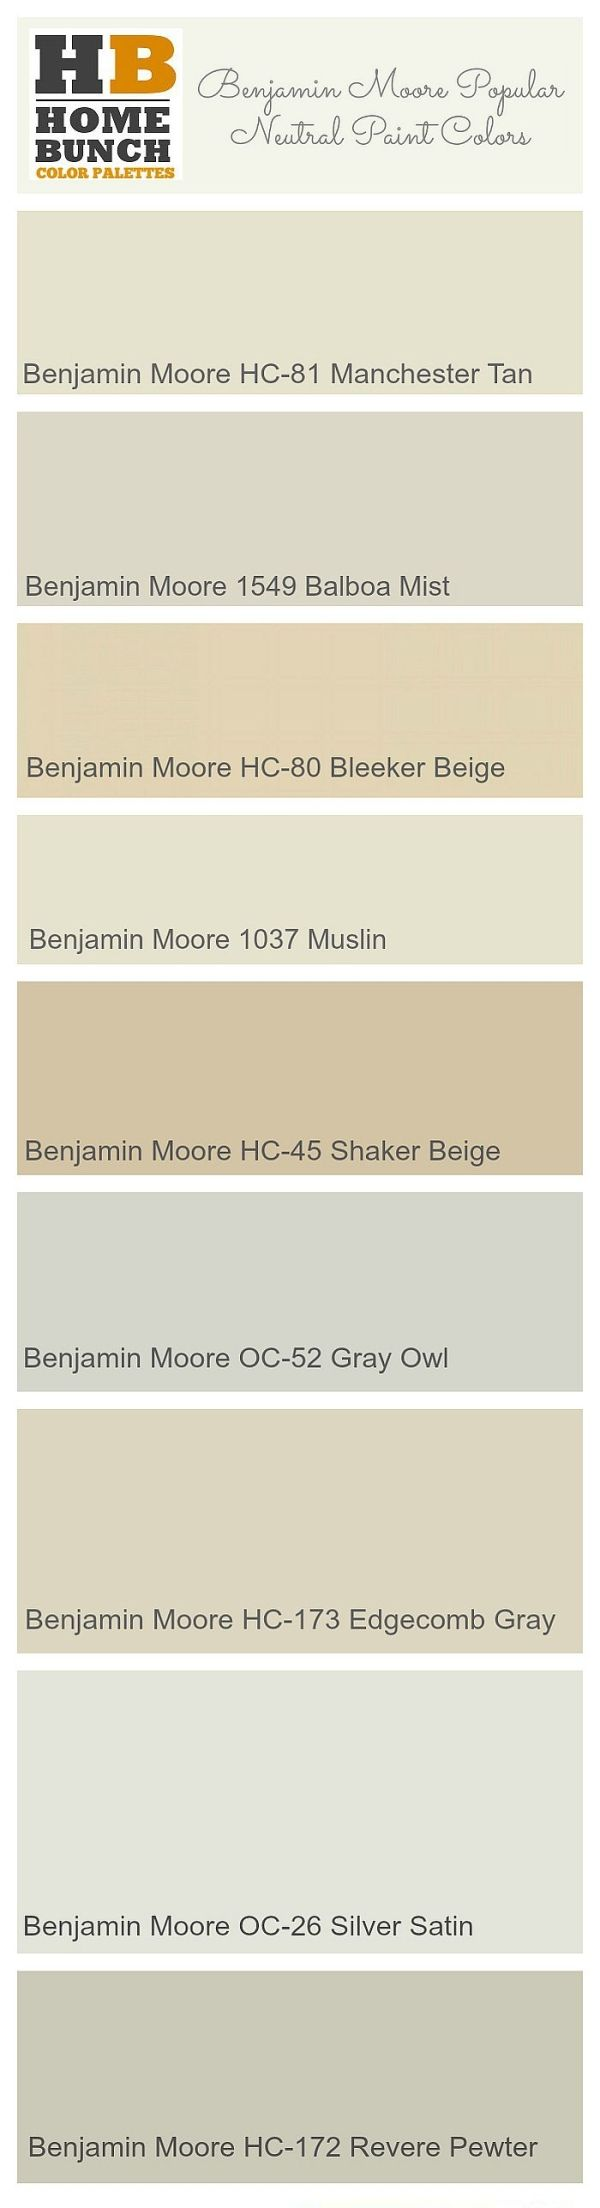 Benjamin moore popular neutral paint colors benjamin for Behr neutral beige paint colors